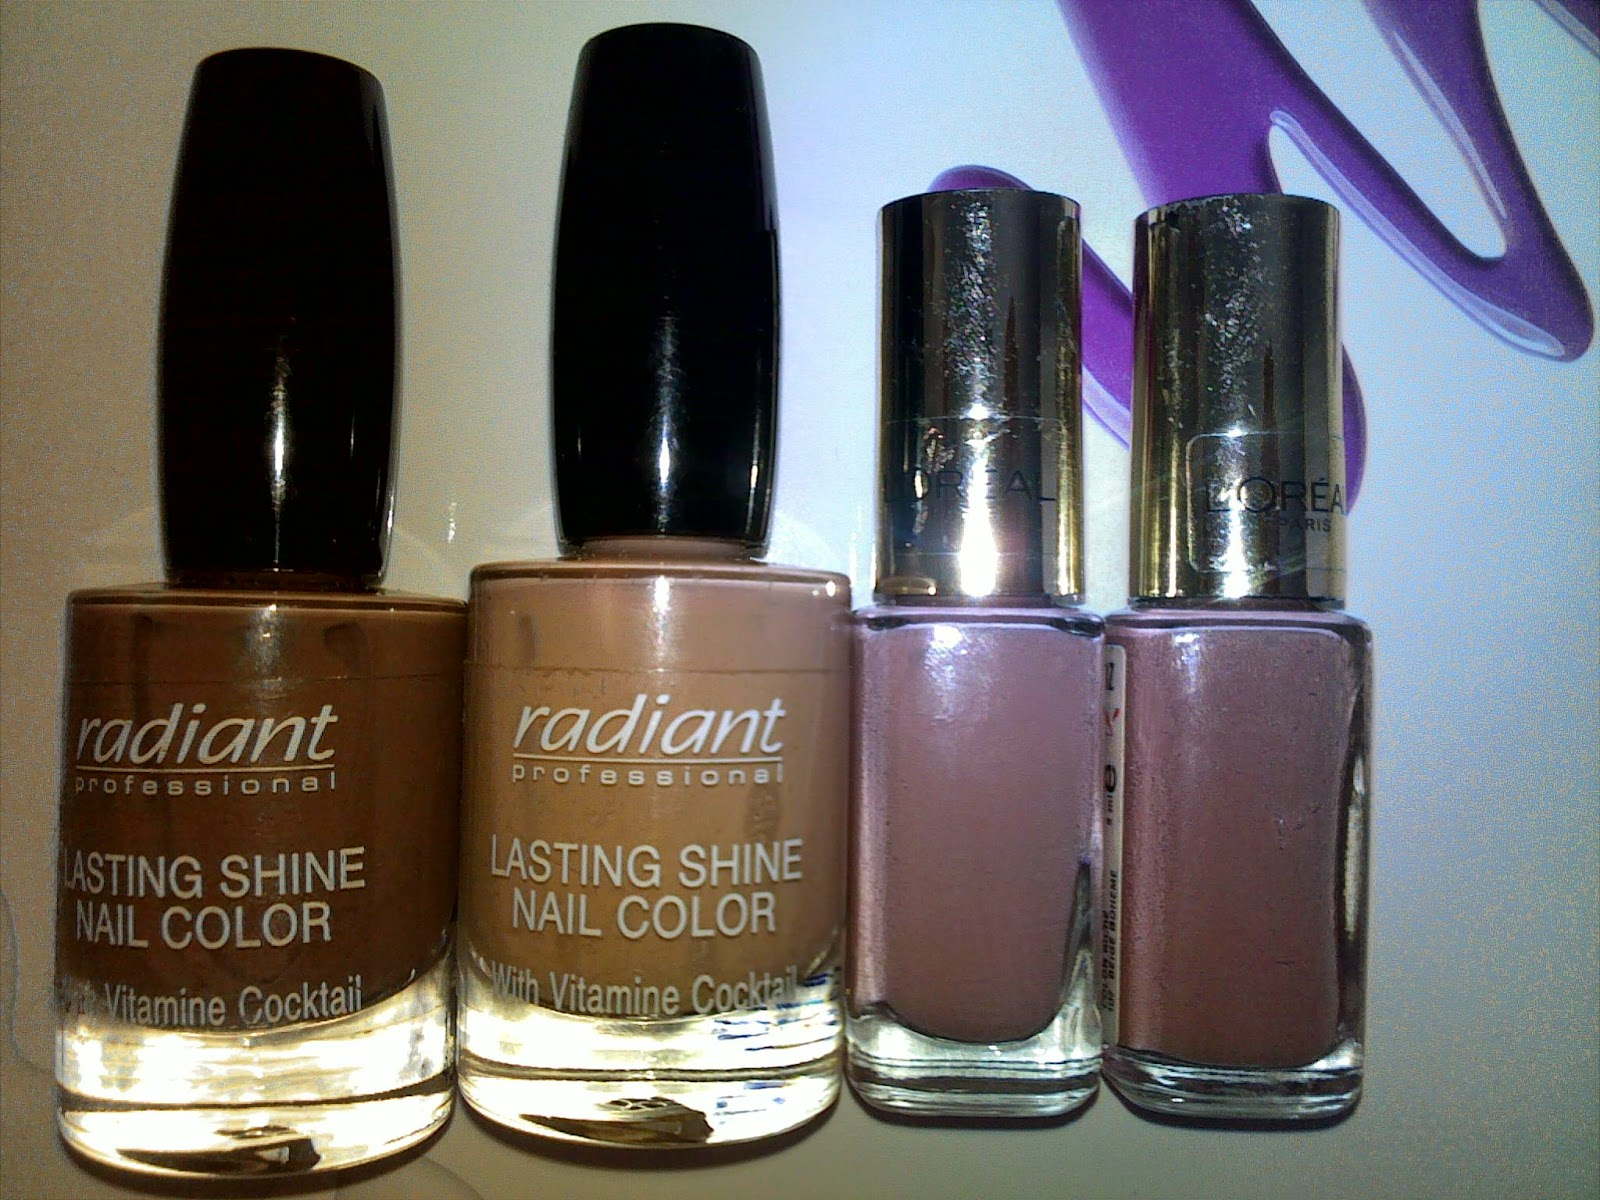 Nude nails, nail polishes from Radiant and L'oreal